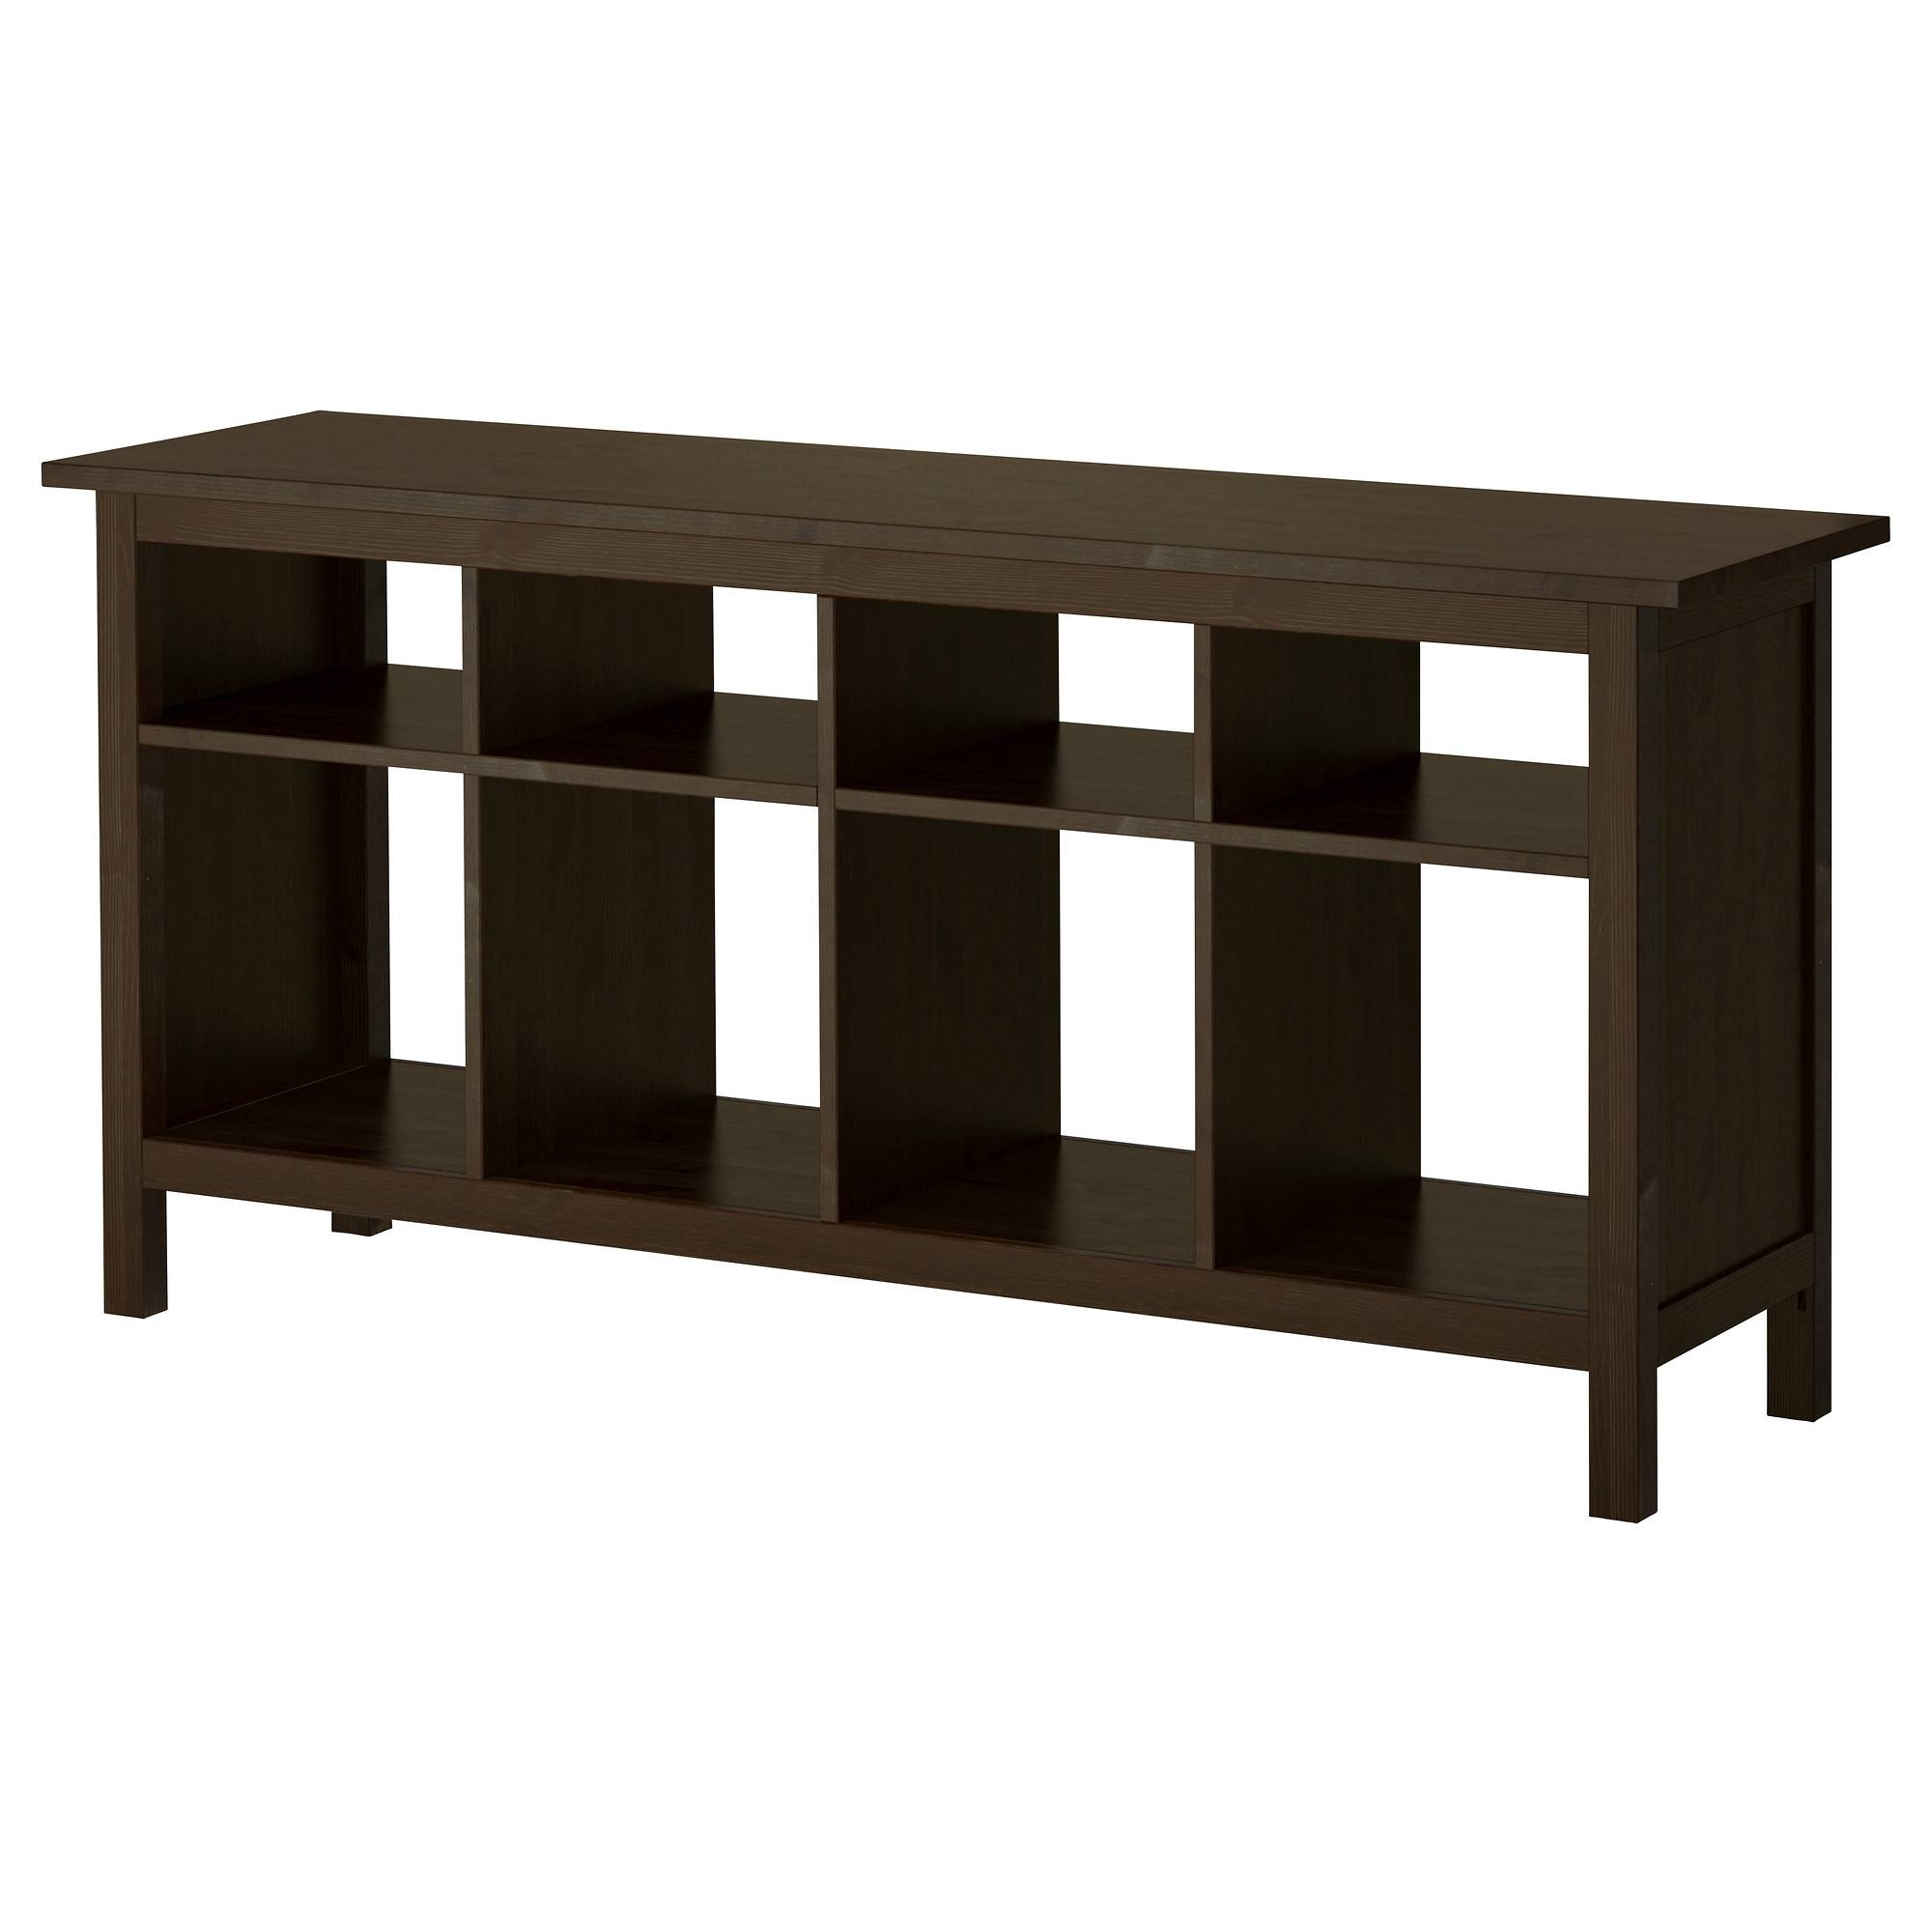 Coffee Tables & Console Tables - Ikea within Low Sofa Tables (Image 7 of 30)